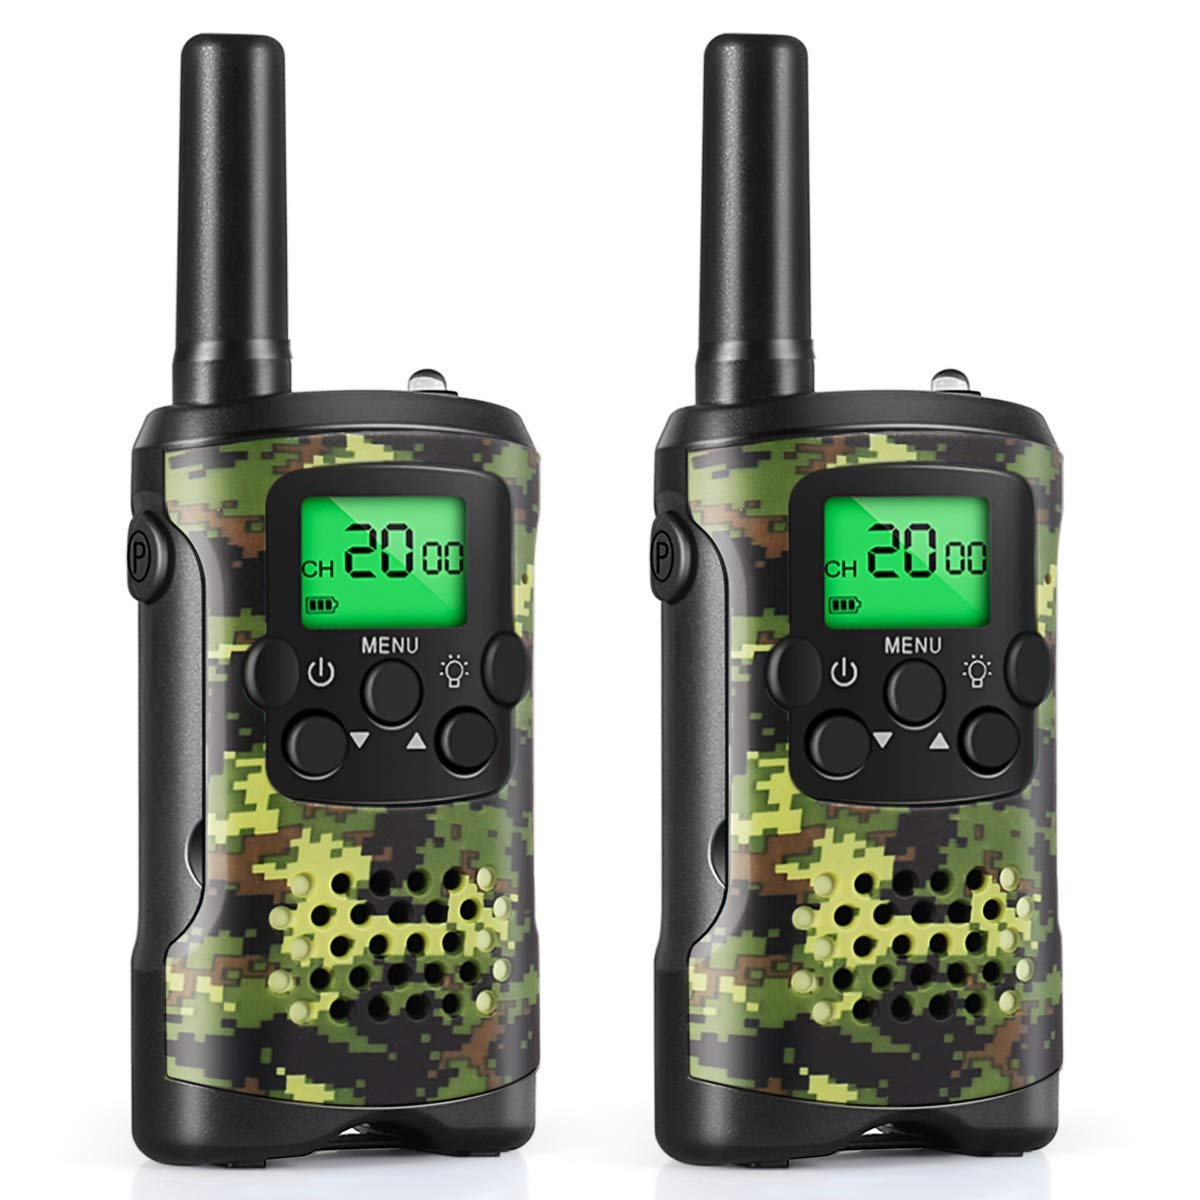 Walkie Talkies for Kids, Toys for 3-12 Year Old Boys 22 Channel 3 Mile Long Range Kids Toys and Kids Walkie Talkies, and Top Toys for for 3 4 5 6 7 8 9 Year Old Boy and Girls by UOKOO (Image #1)